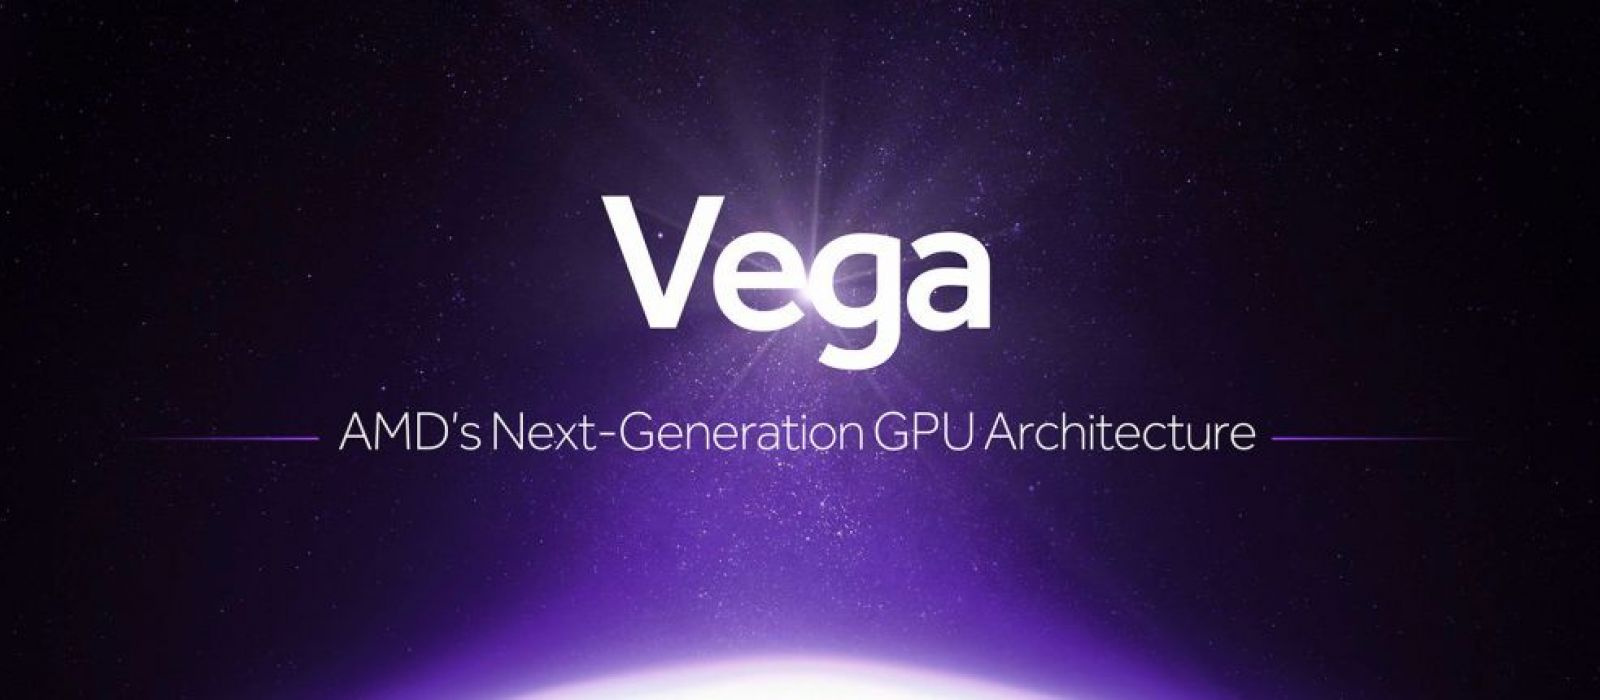 Появились новые бенчмарки AMD Radeon Vega FE в Battlefield 1, Assassin's Creed: Unity и Sniper Elite 4